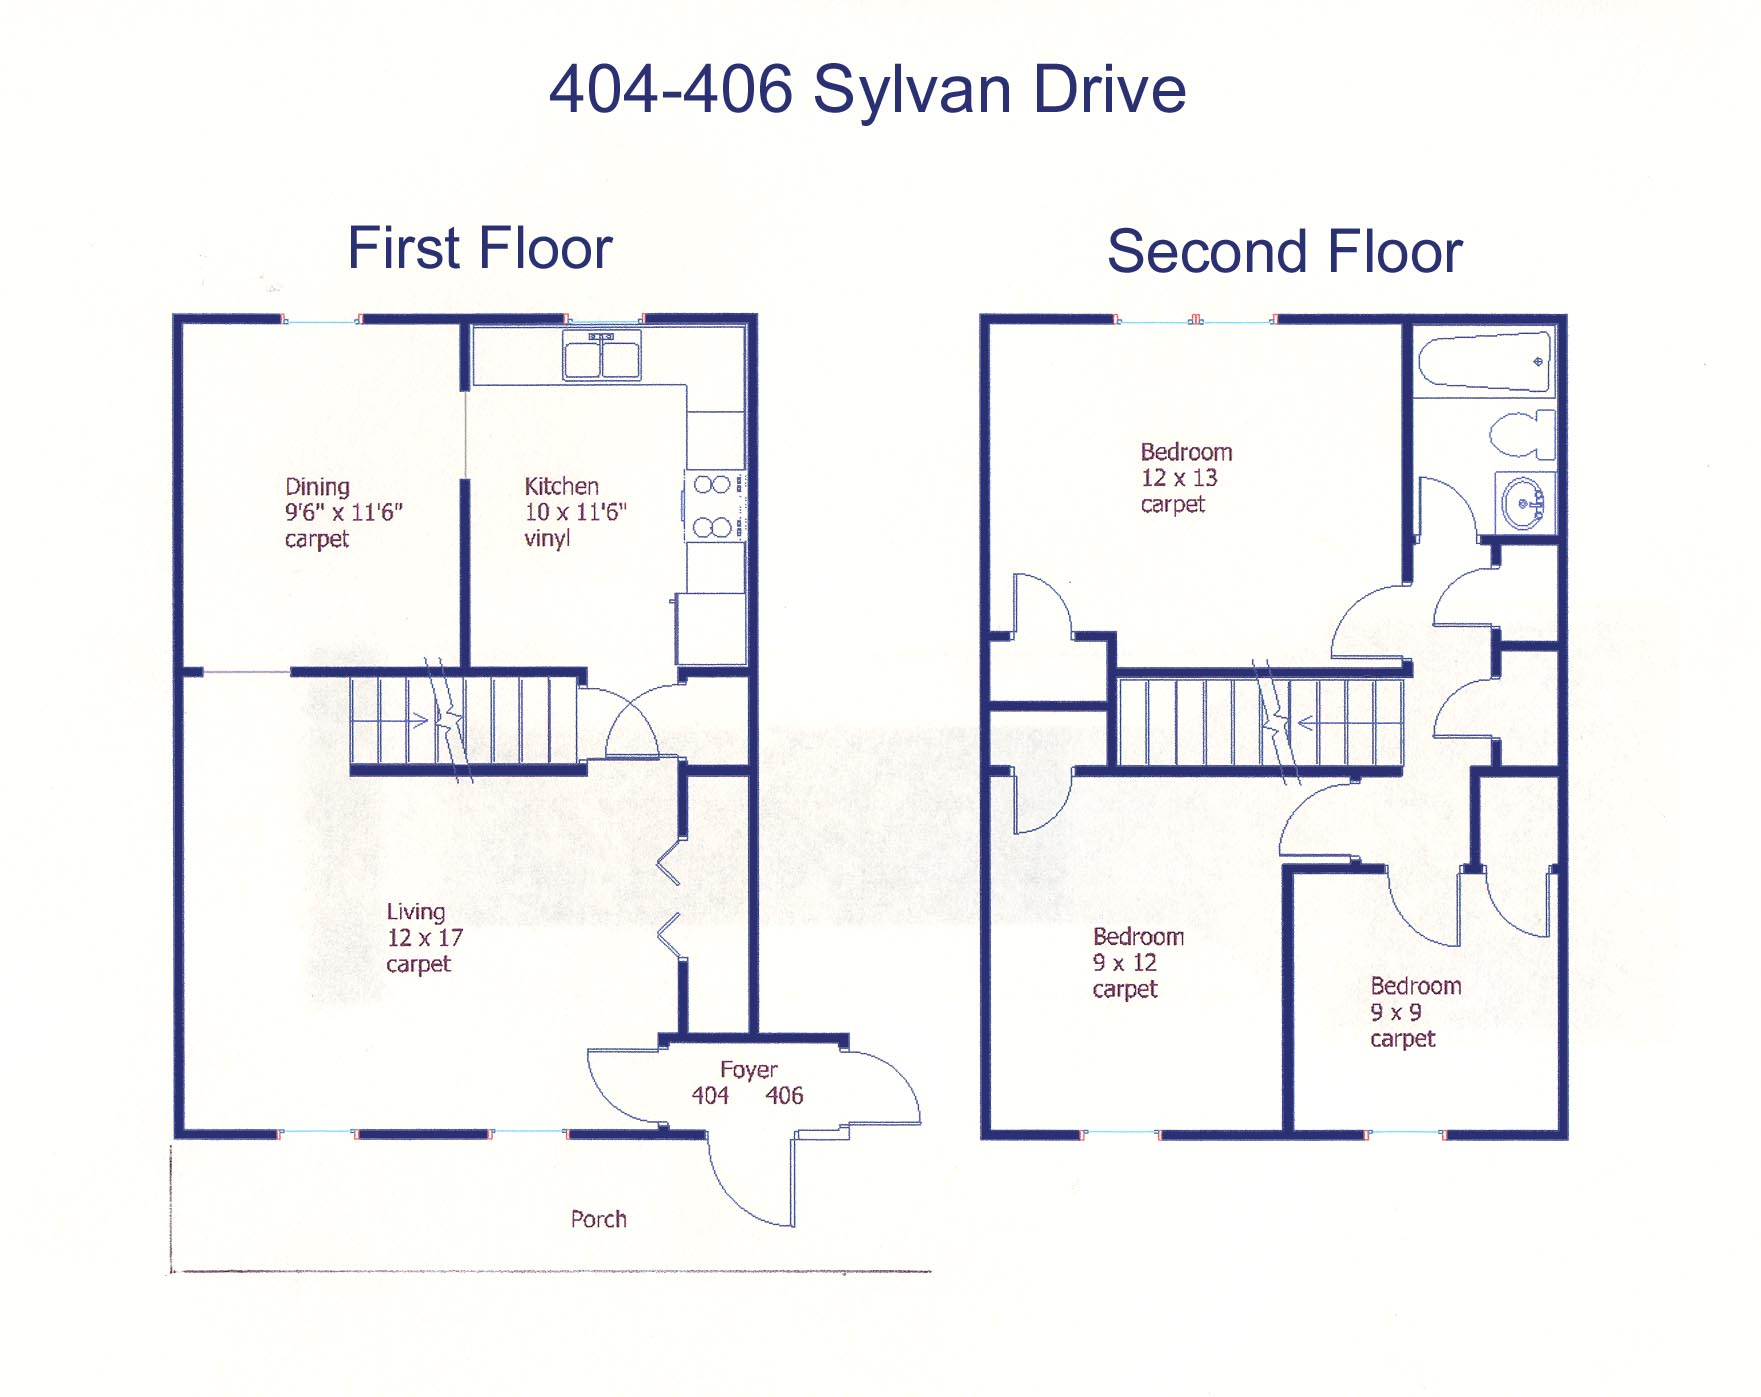 Floor plan of the professional duplex for rent at 404-406 Sylvan Drive, State College PA